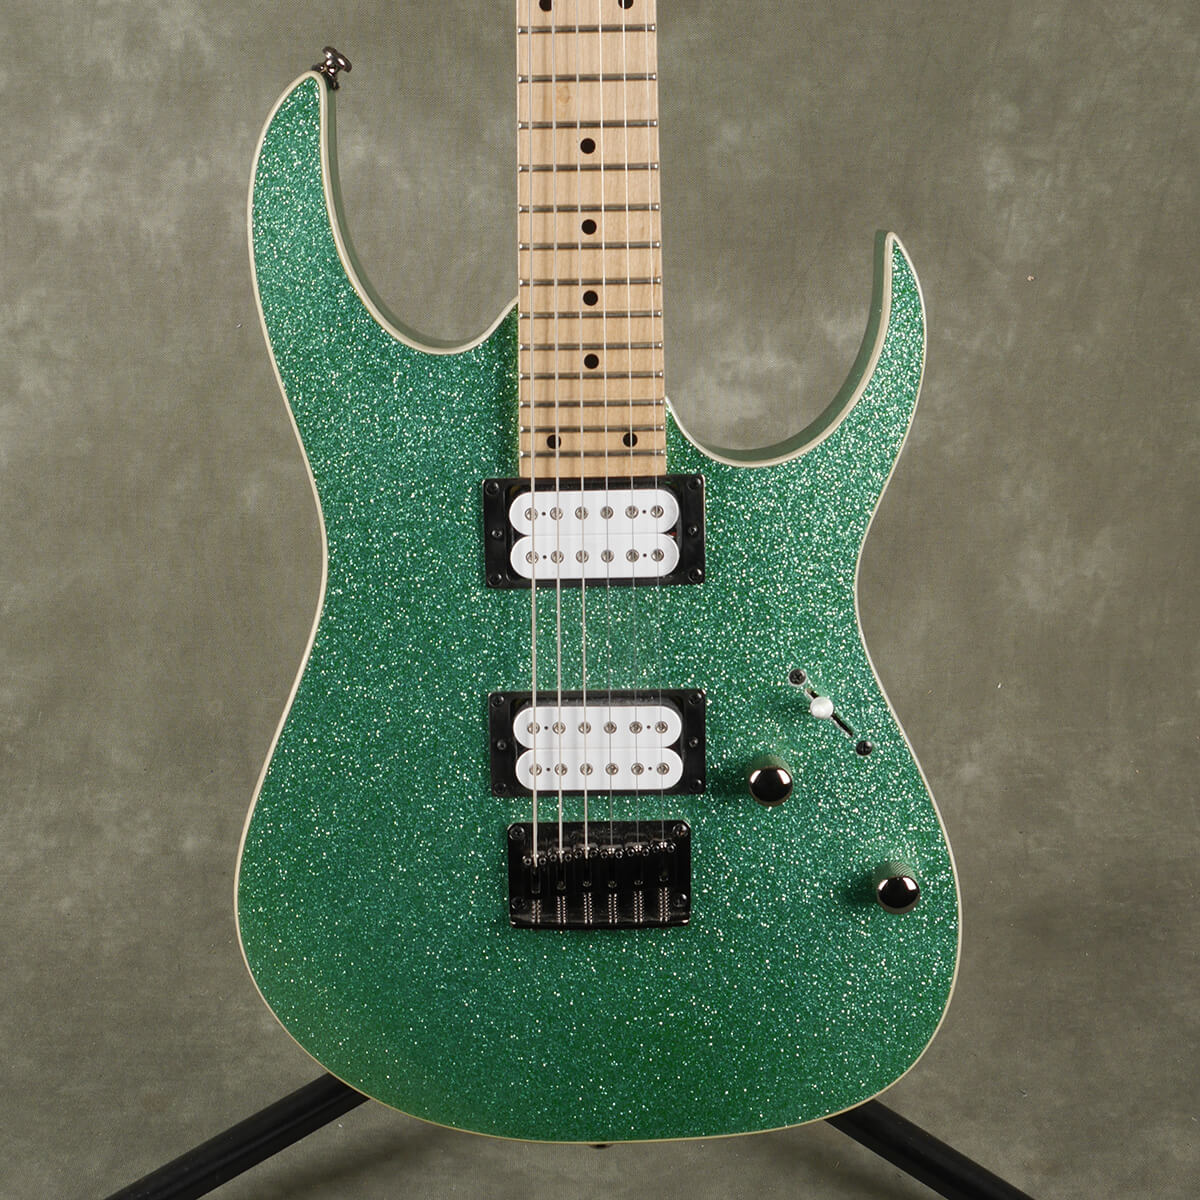 Ibanez RG421MSP - Turquoise Sparkle - 2nd Hand